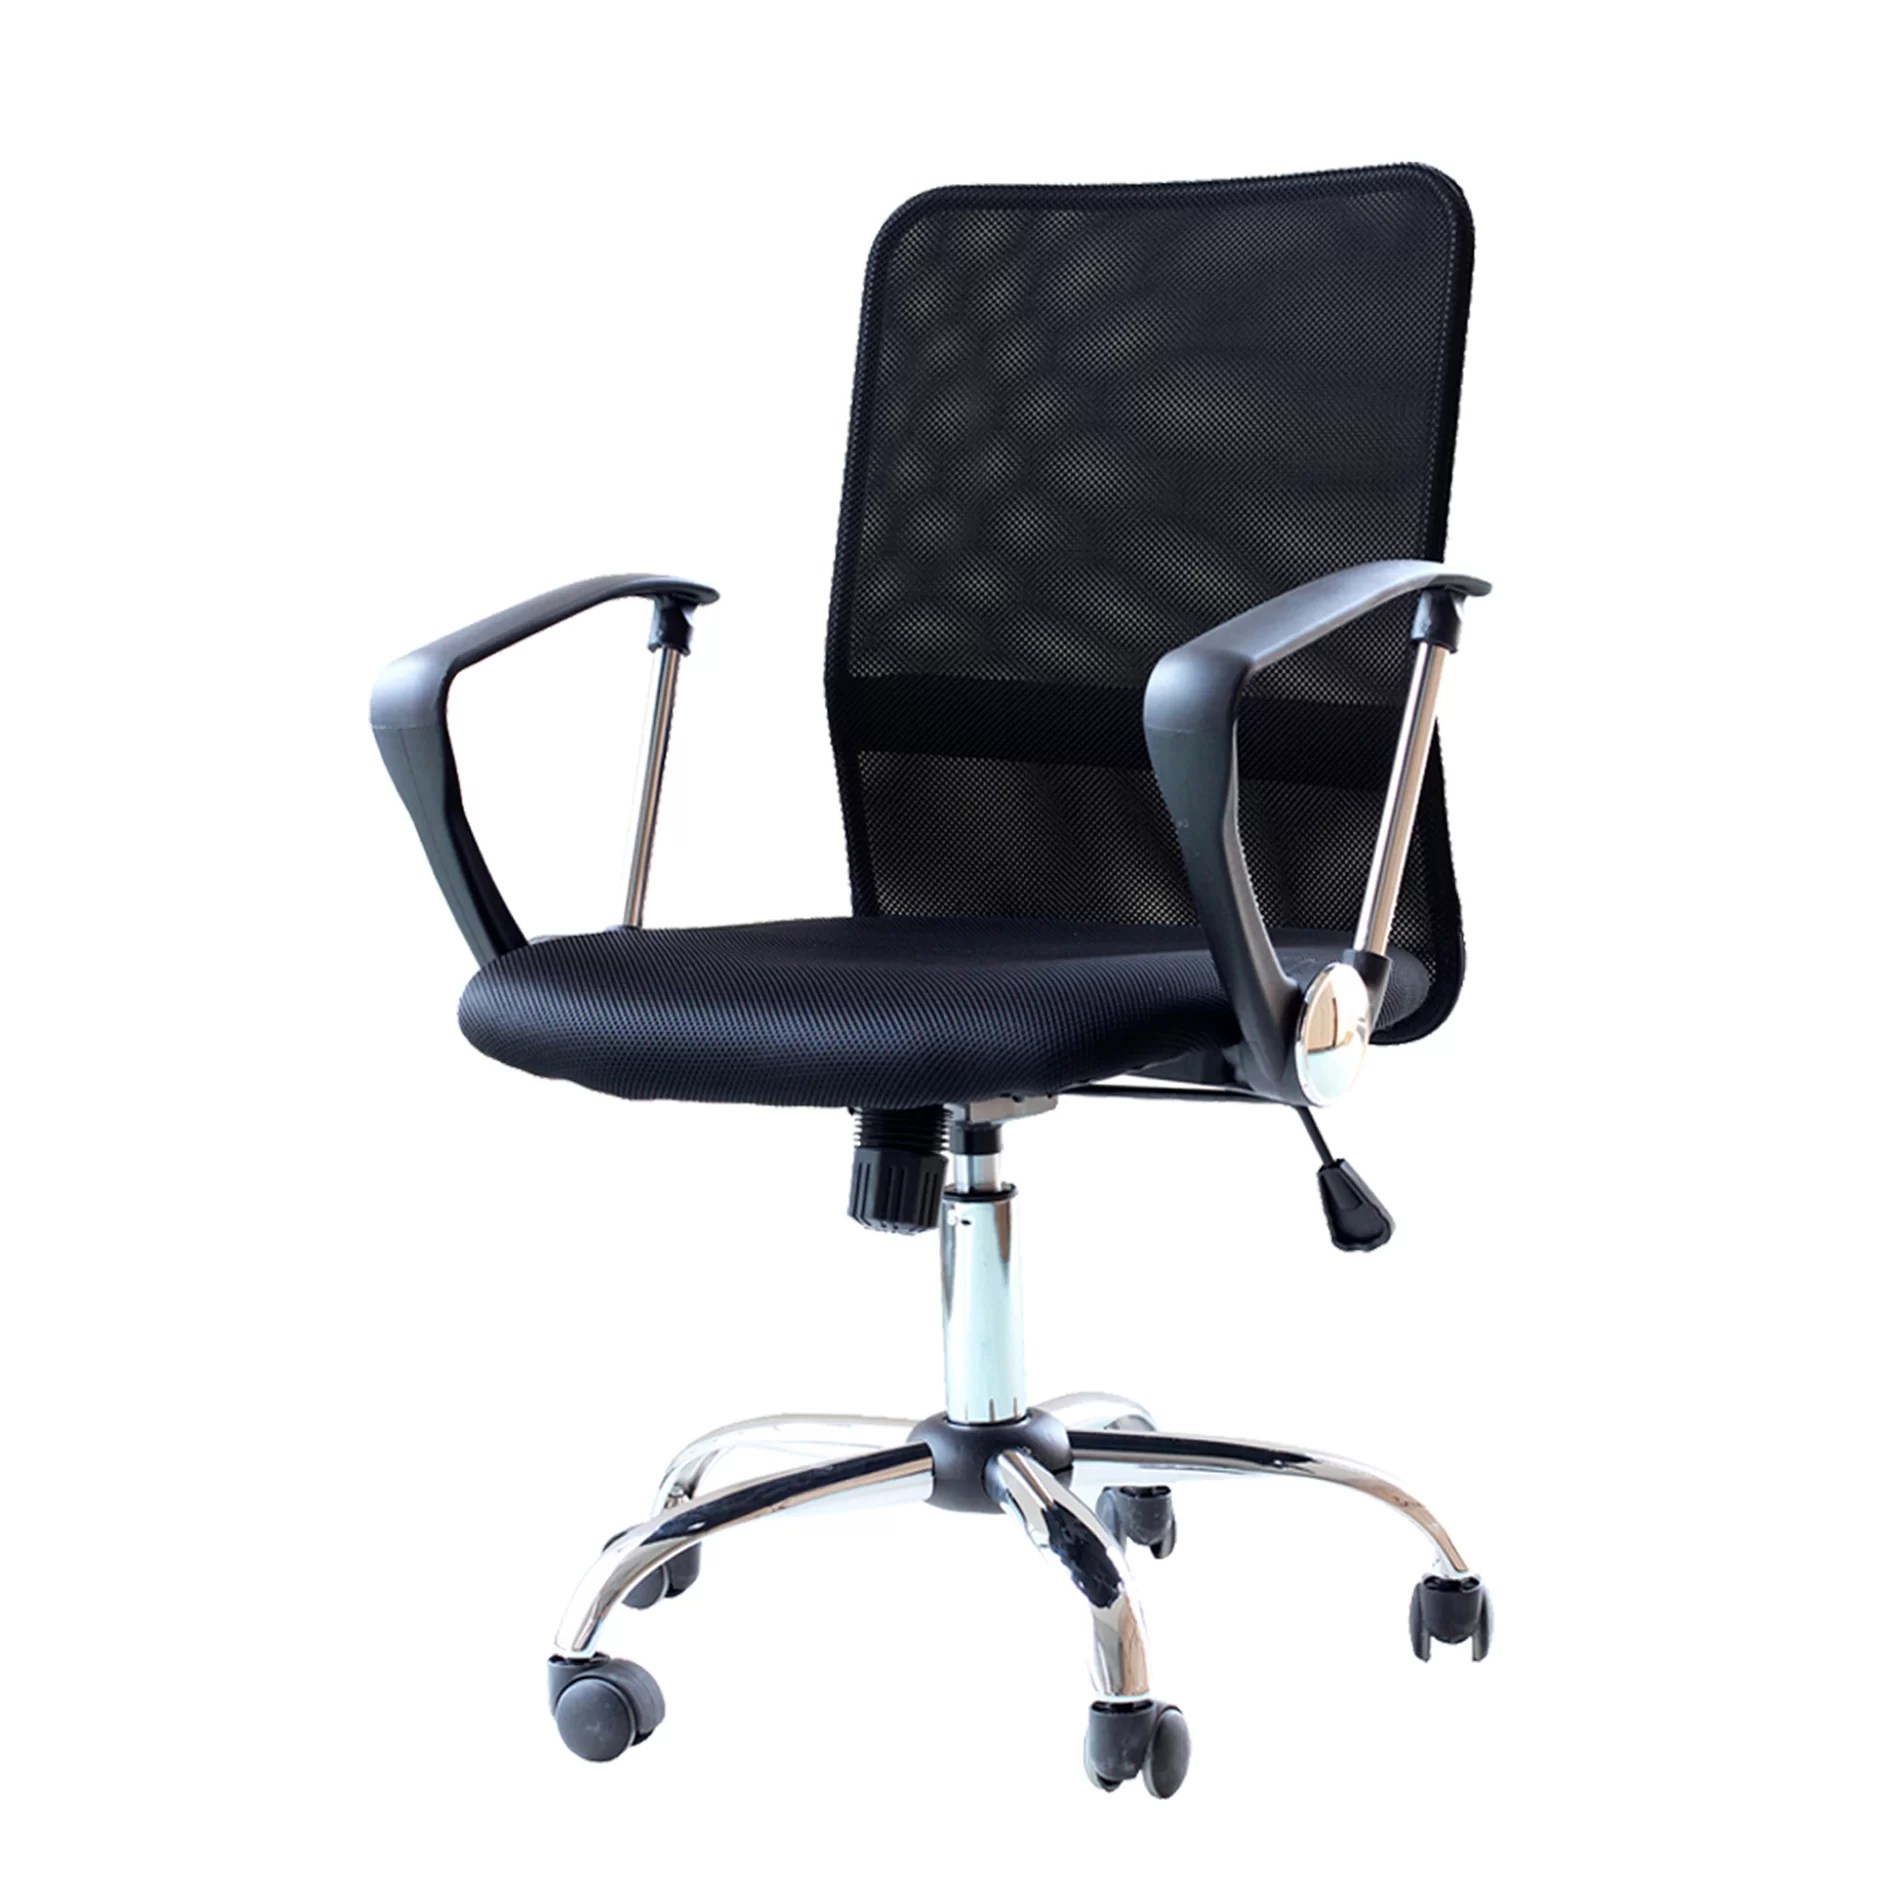 desk chair adjustable slip covers at target idsonlinecorp ergonomic mid back mesh